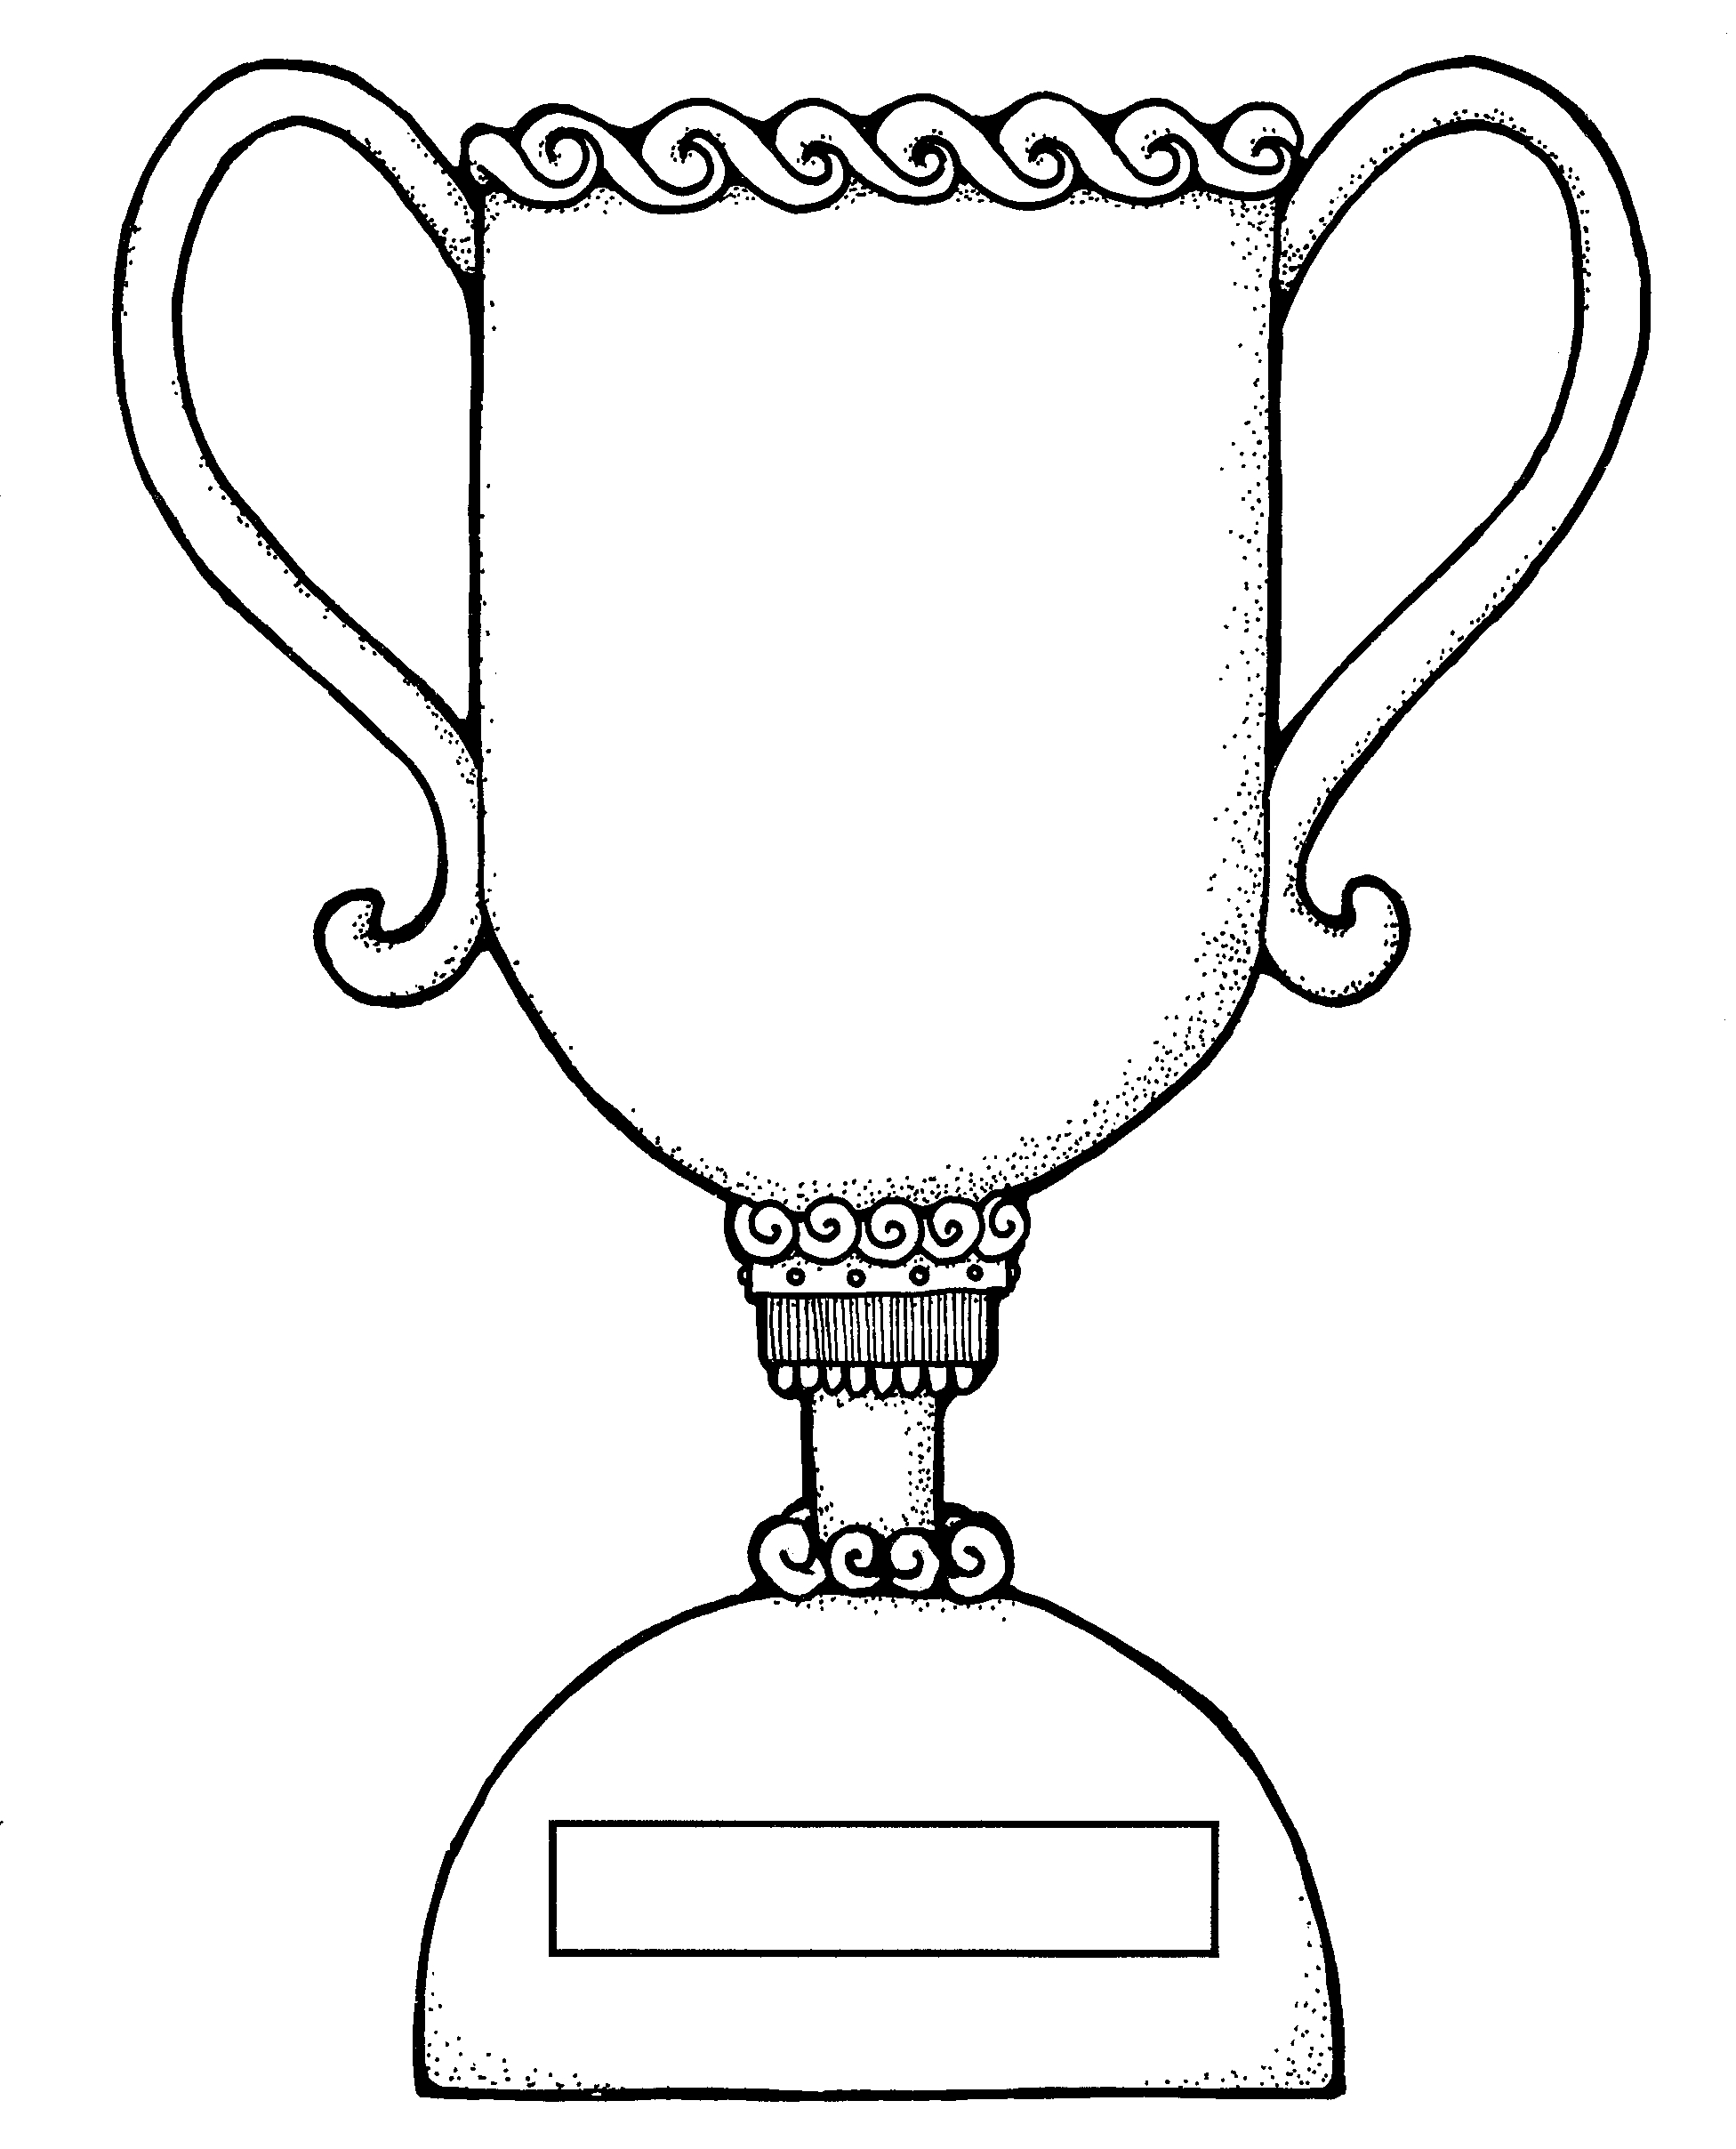 trophy coloring sheet coloring pages. Black Bedroom Furniture Sets. Home Design Ideas